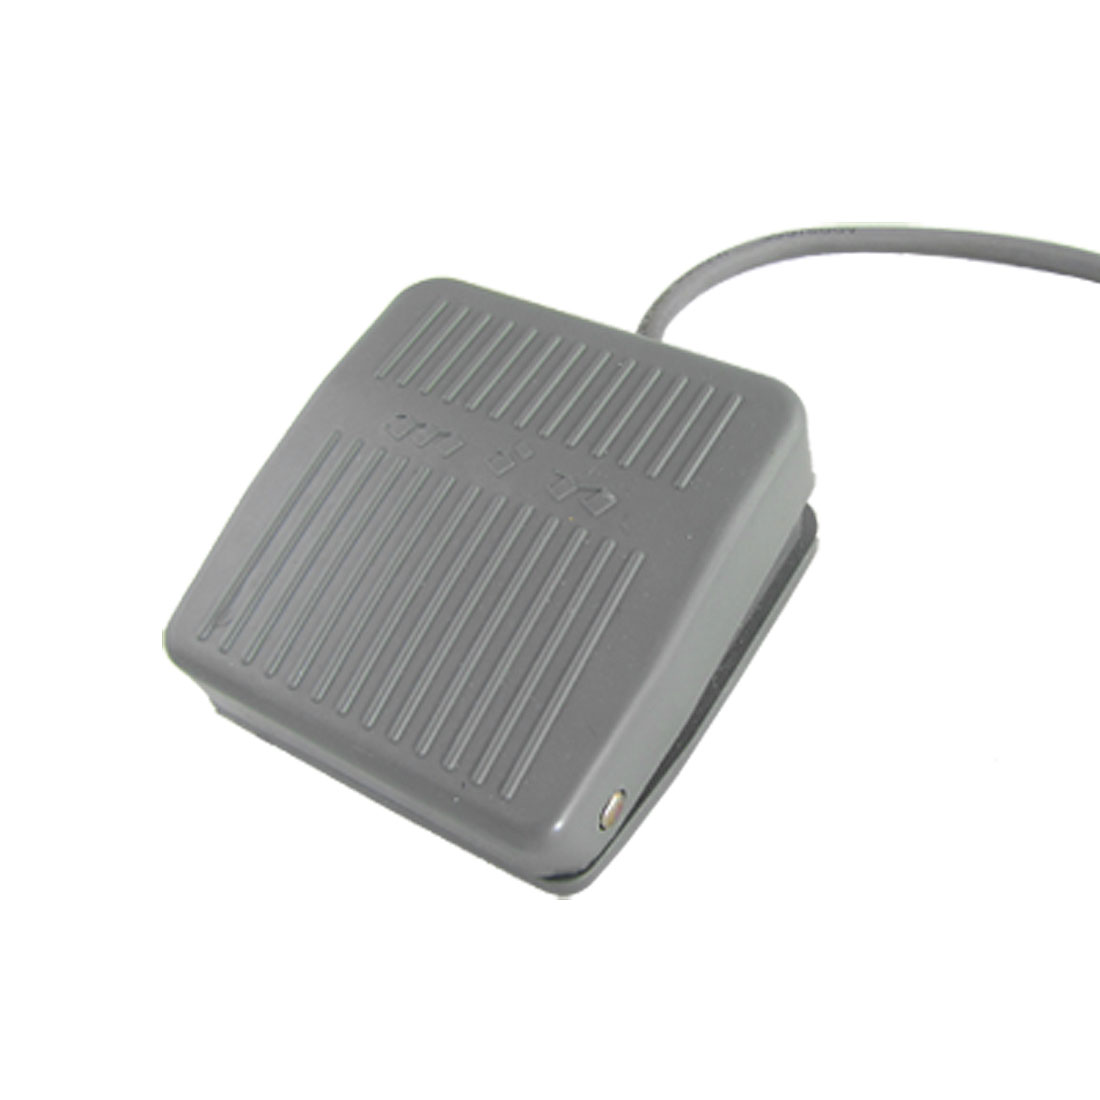 Gray Nonslip Surface Power Treadle Foot Pedal Switch AC 250V 10A SPDT NO NC